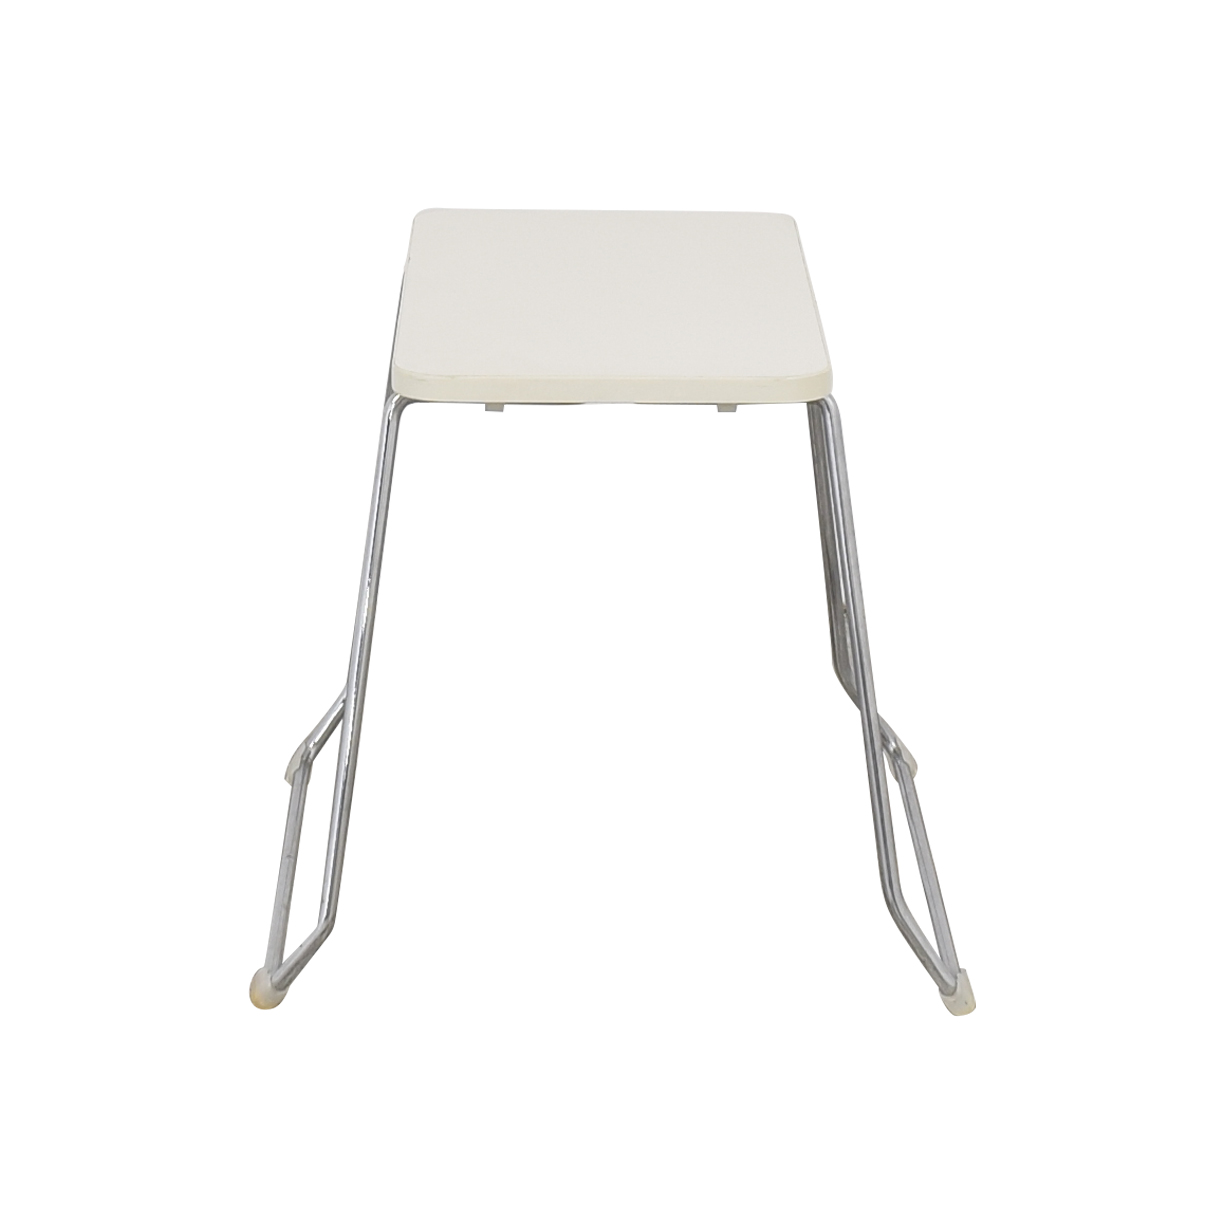 Koleksiyion Asanda End Table / Tables